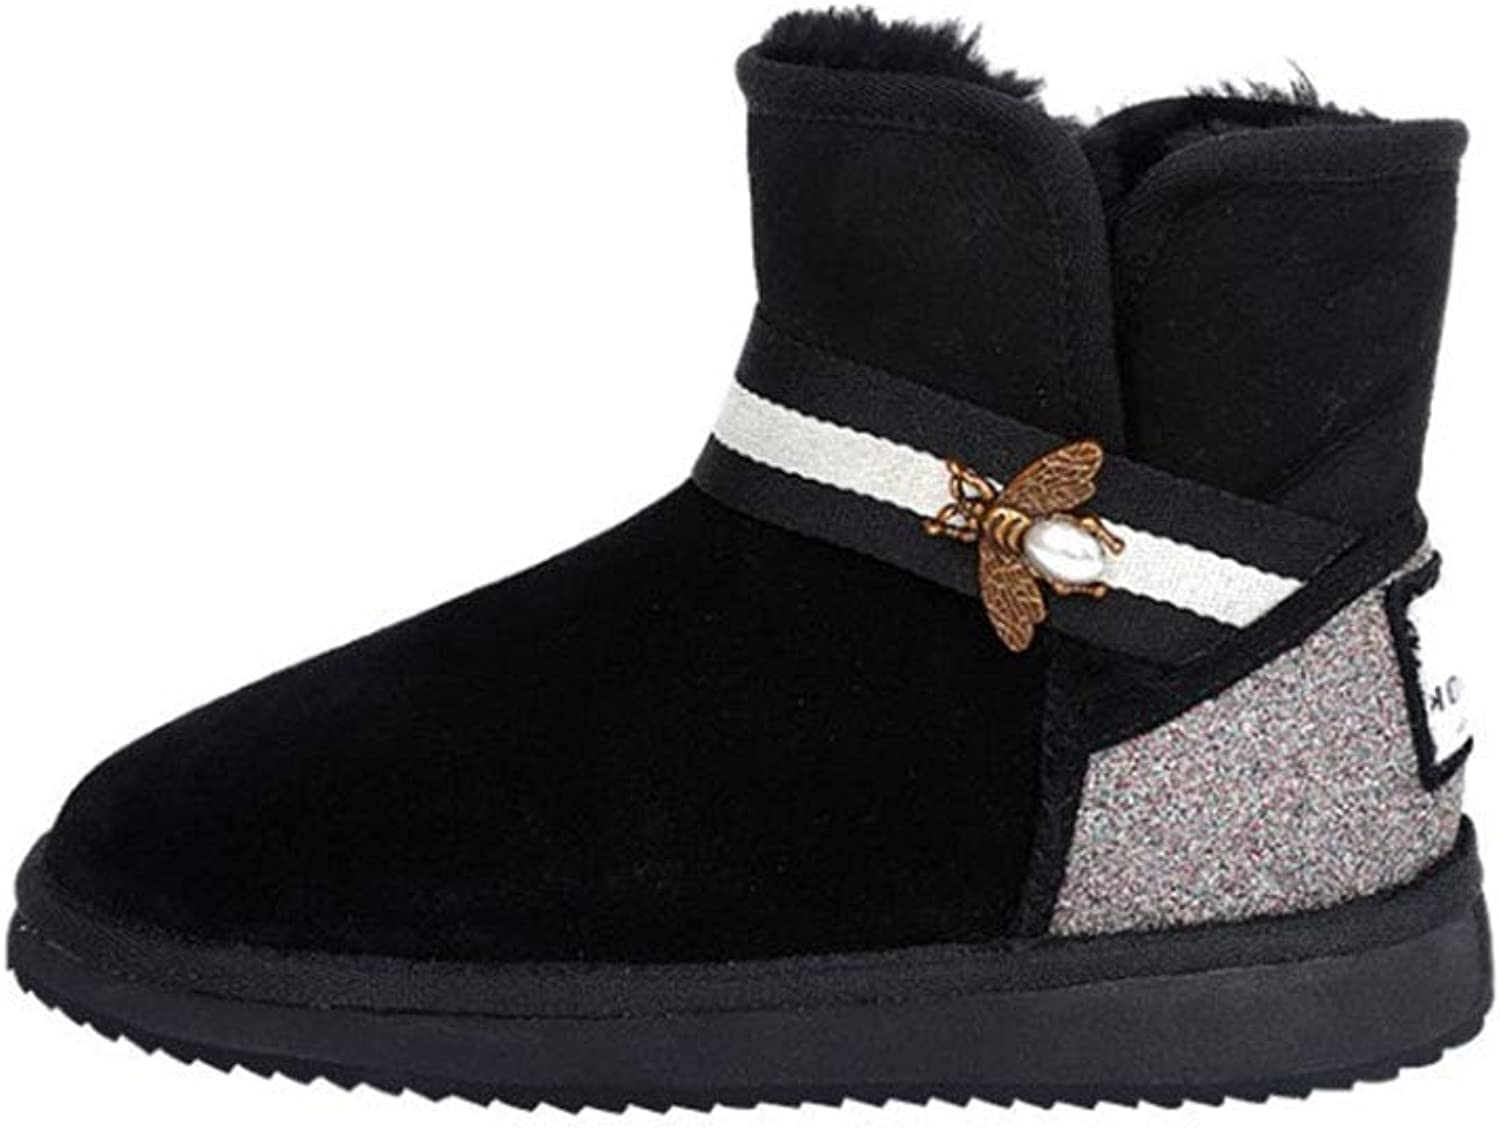 Women's Boots Suede Winter Martin Boots Winter Plush Warm Ankle Boots Fashion Platform Combat High-top Casual shoes Black Brown (color   A, Size   38)